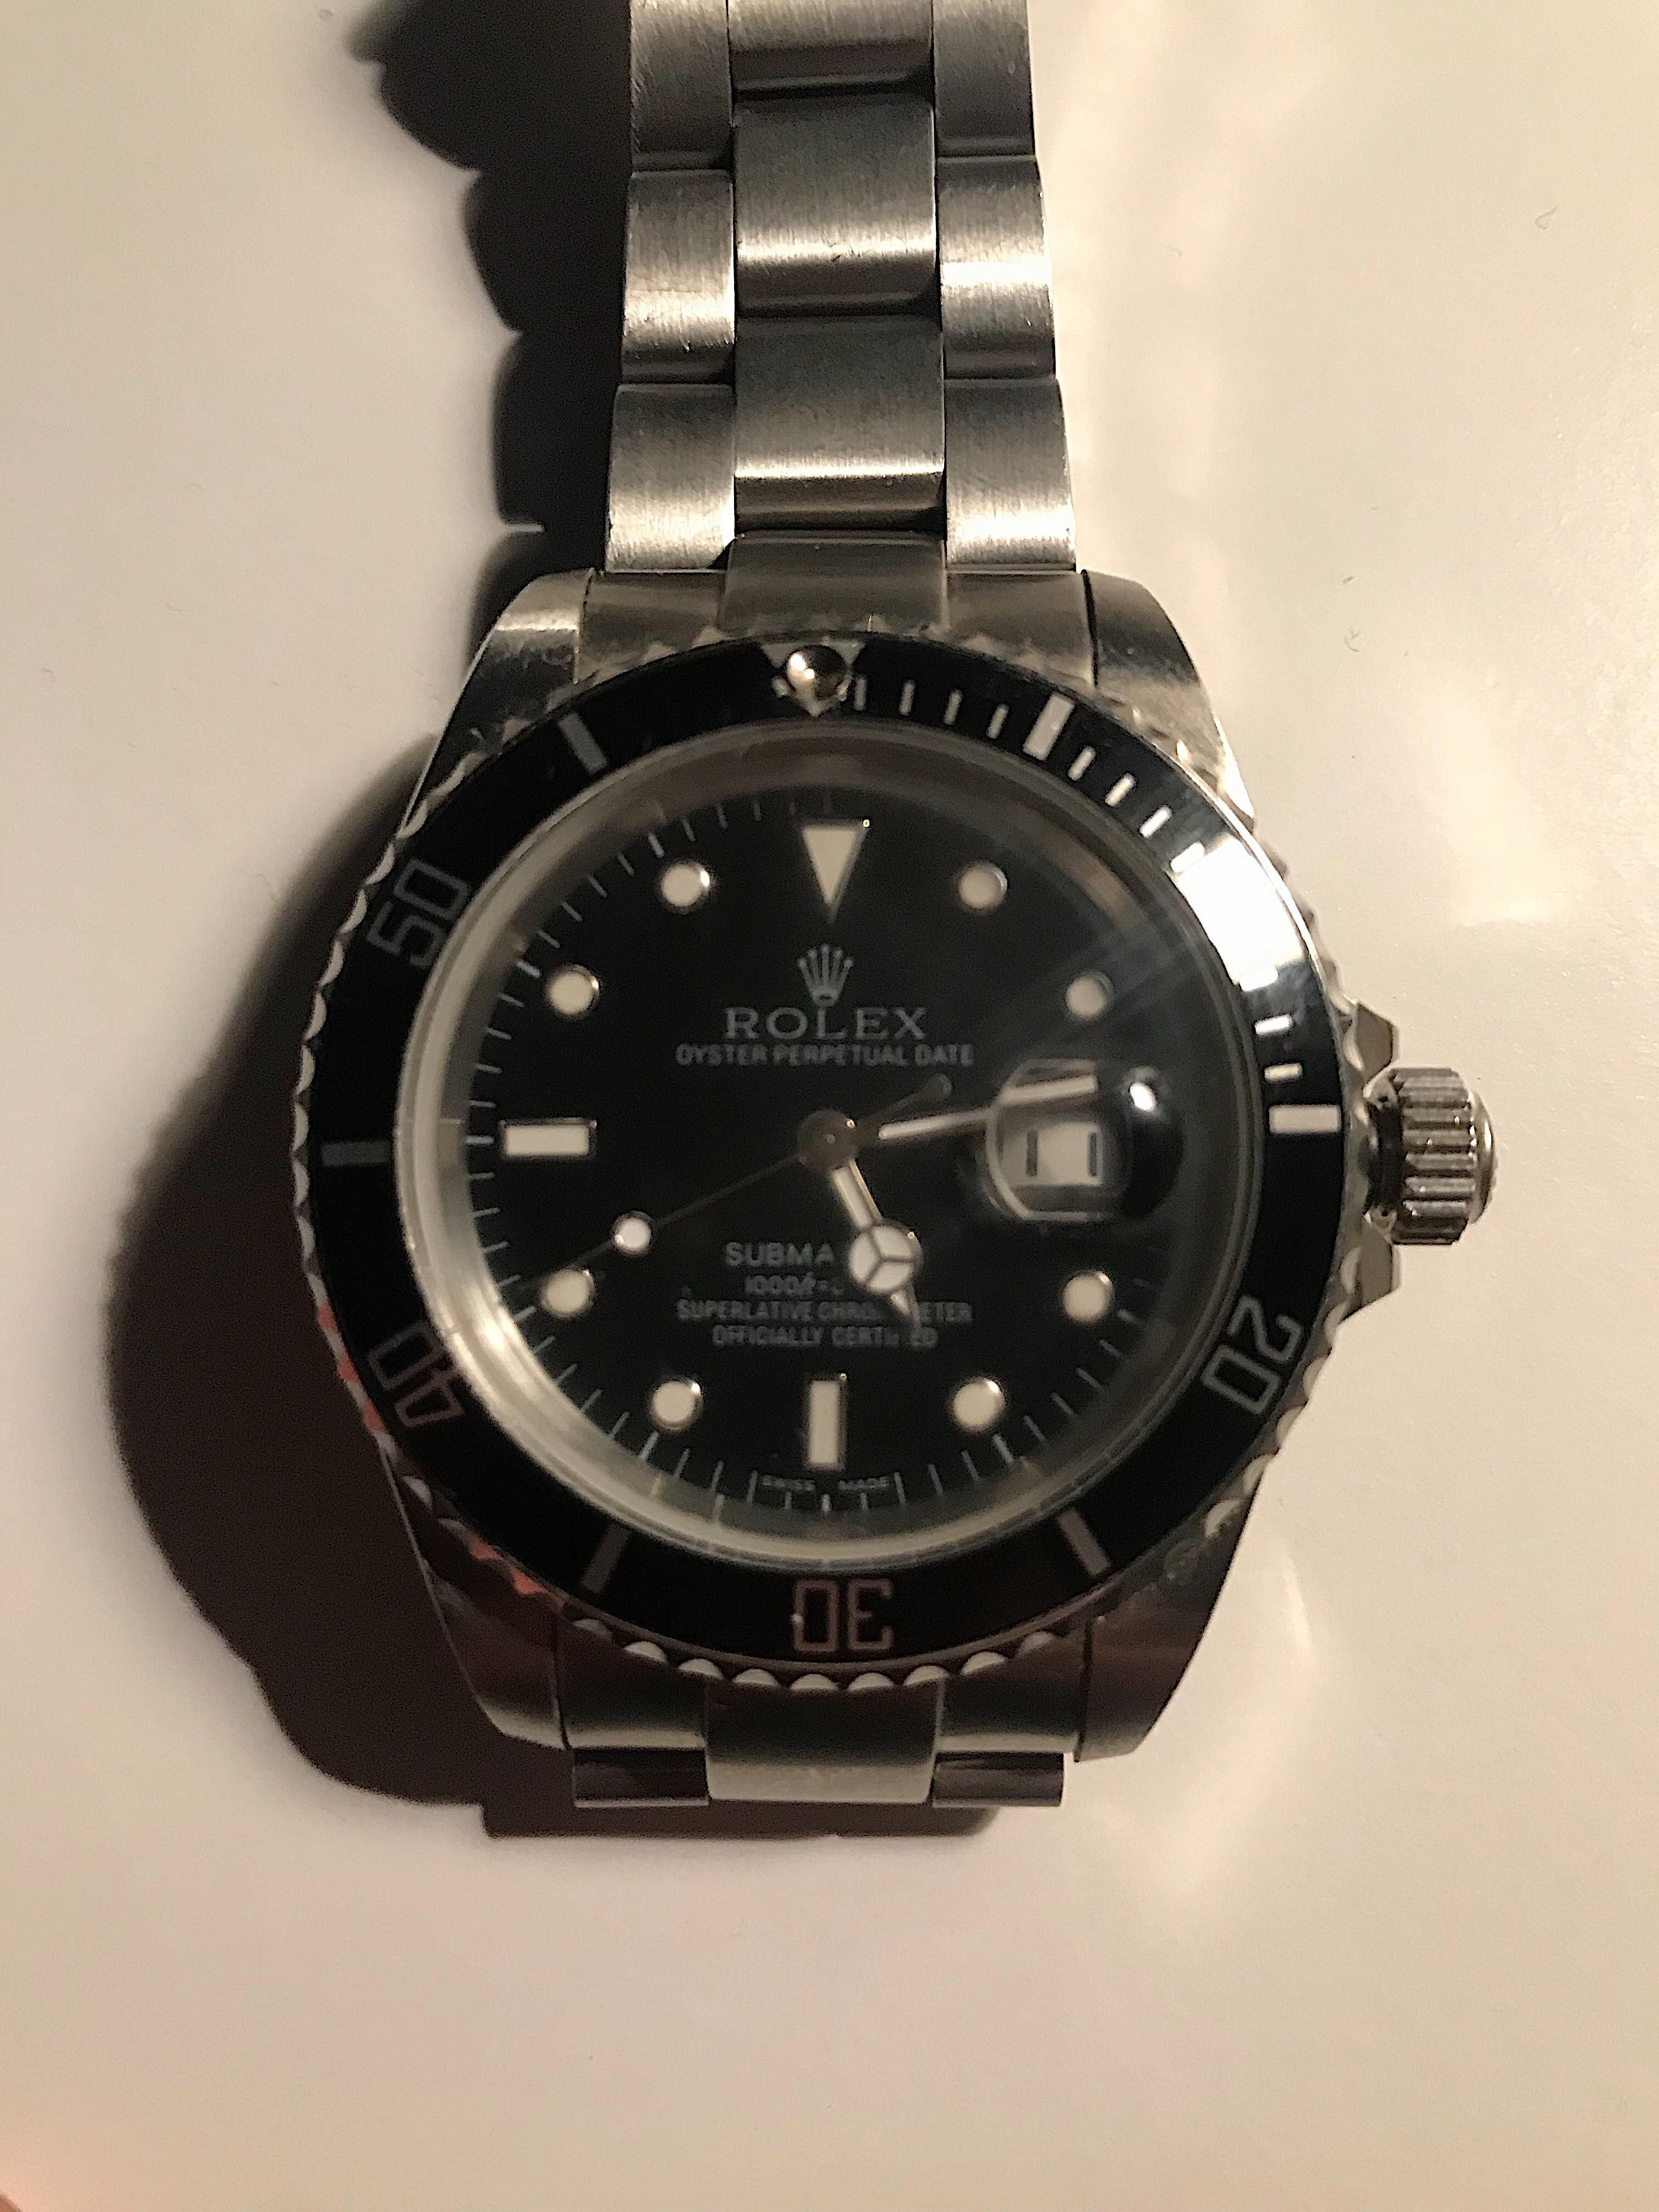 rolex submariner maybe watch enthusiasts of reddit how can you